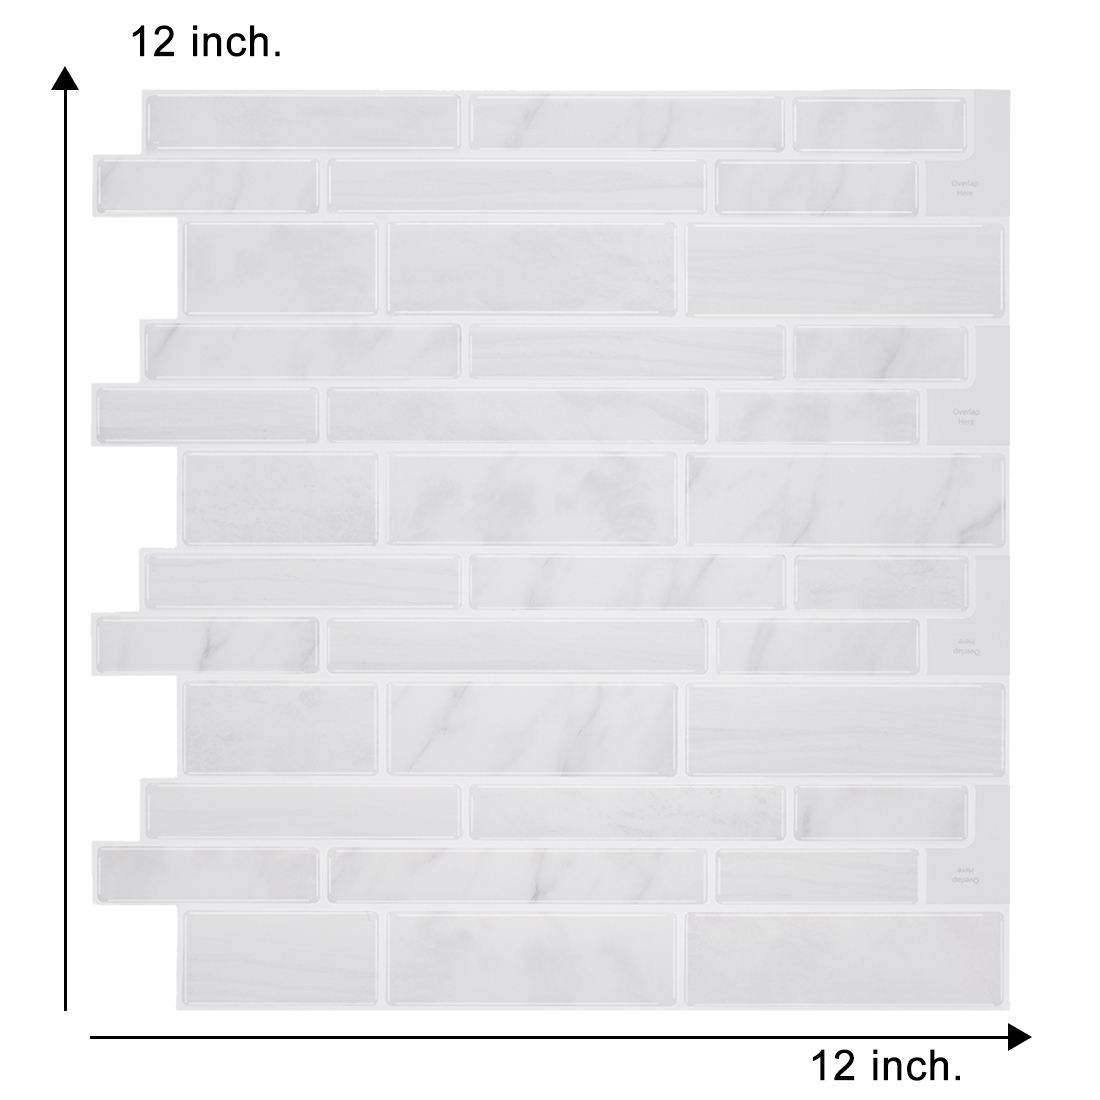 Special Offer Just For Today Waterproof Peel and Stick Tile Backsplash for Kitchen